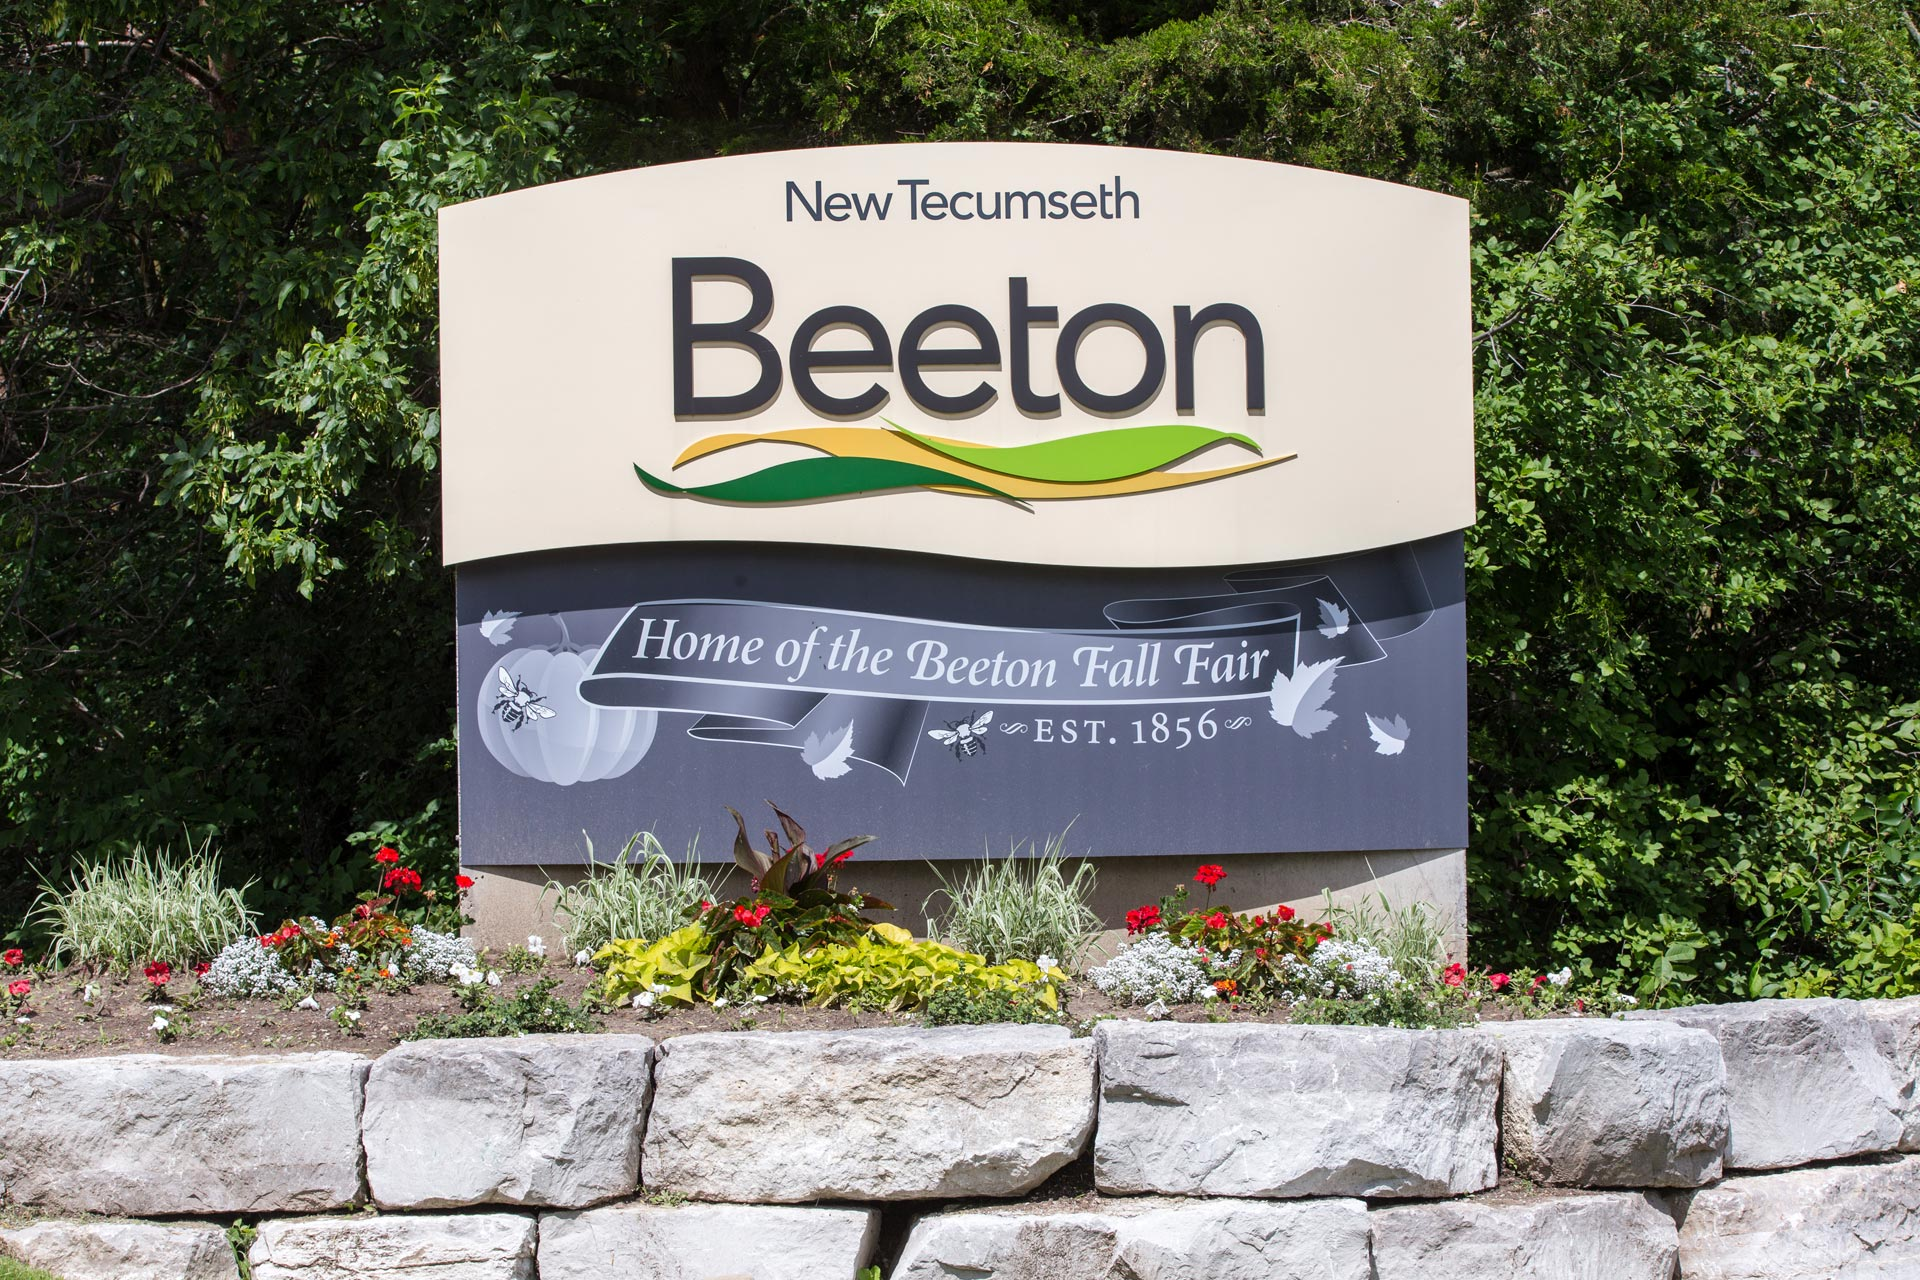 Beeton - Build it Green